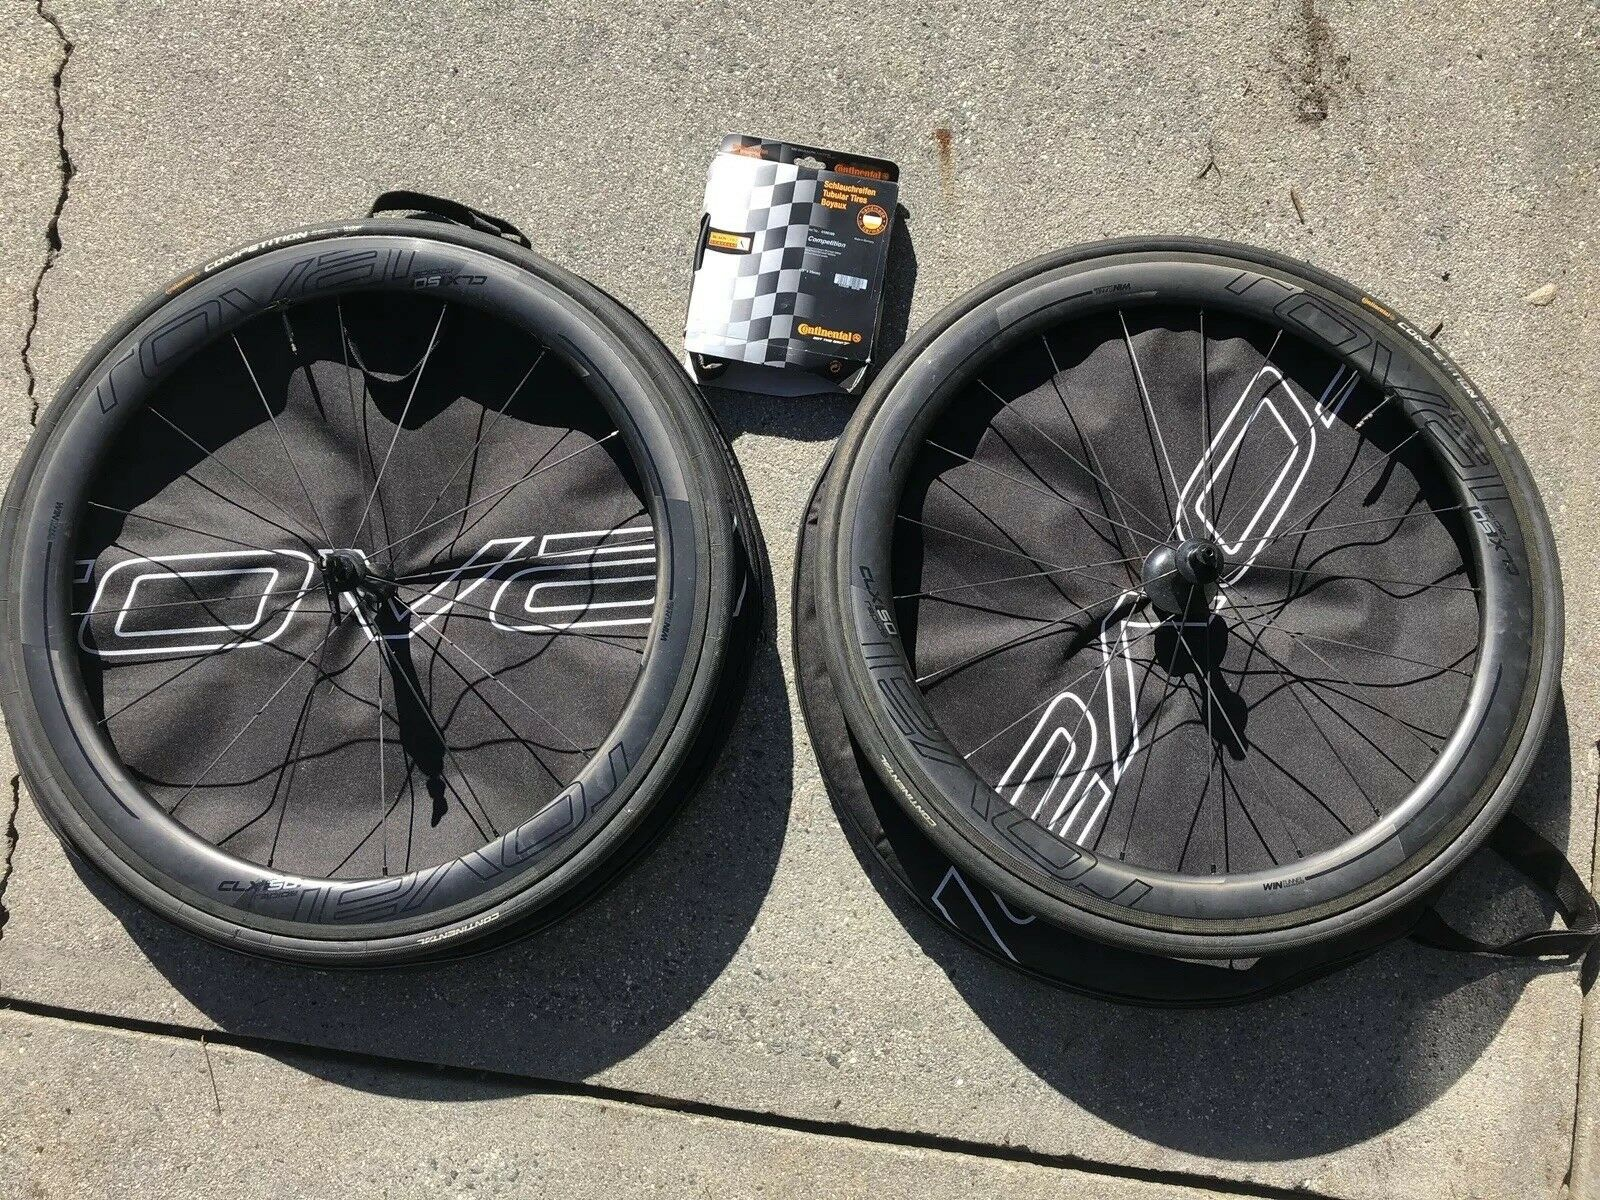 Roval CLX 50 Tubular Wheelset CeramicSpeed + 3 Continental Competition Tires